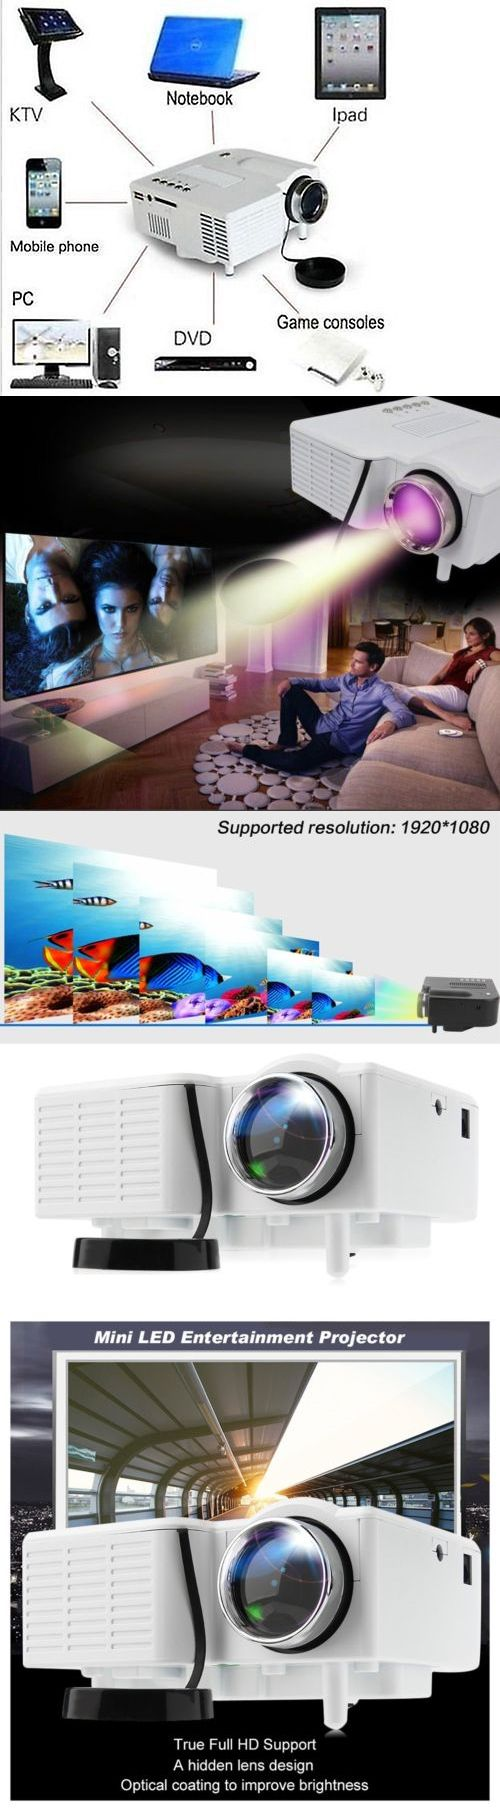 Home Theater Projectors: 1080P Mini Hd Led Projector Home Cinema Theater Multimedia Pc Usb Tv Av Hdmi Dvd -> BUY IT NOW ONLY: $34.85 on eBay!